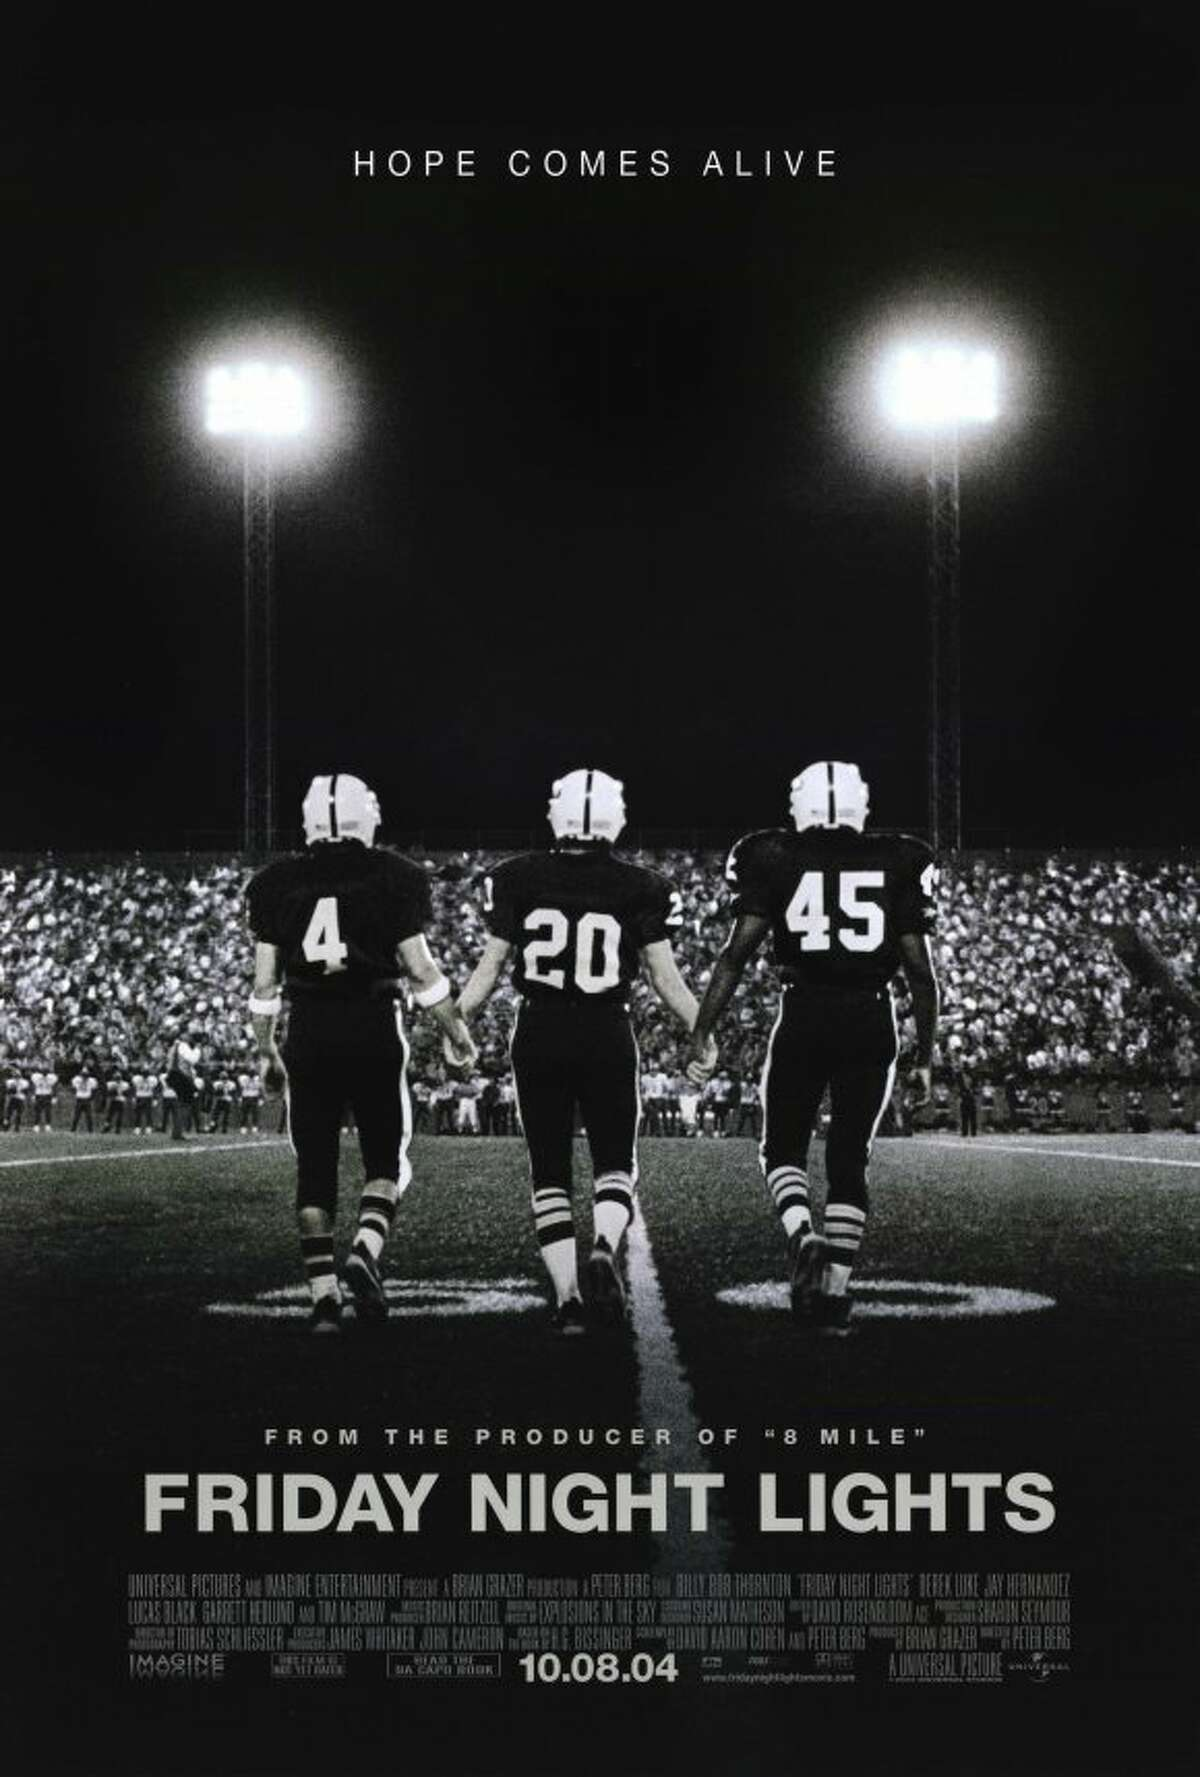 Friday Night Lights: Based on Buzz Bissinger's book about small-town Texas' love for football, the movie follows one team for an entire season. Texas has a deep passion for football and the film lovingly portrays all the pros and cons of that obsession. We, as a nation, love this story and these characters so much, a movie-based on the book wasn't enough and a TV series followed.